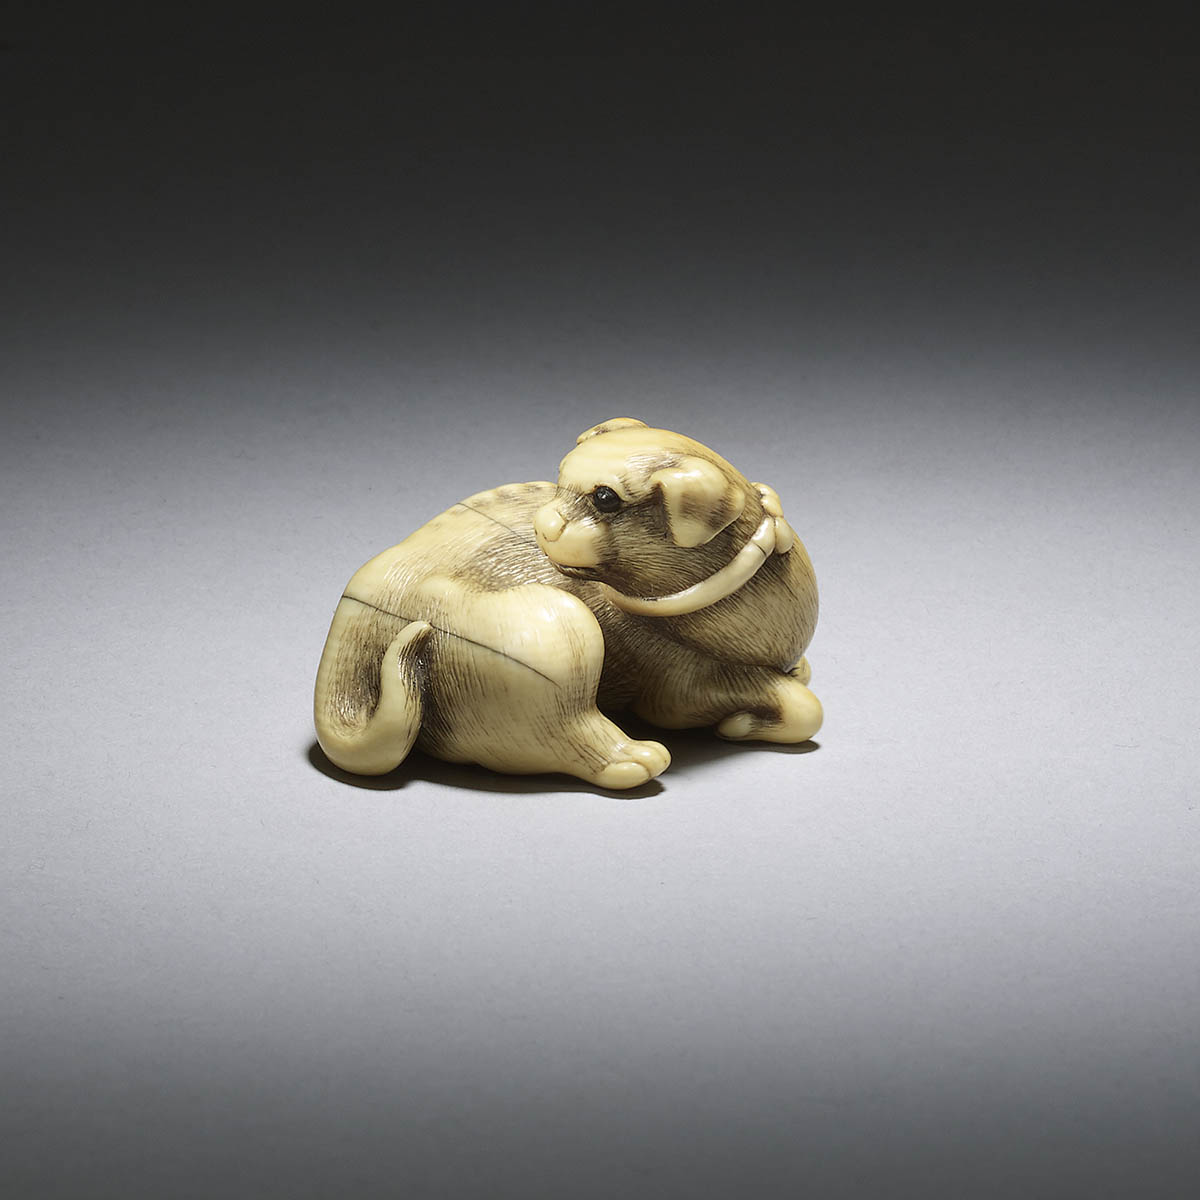 Ivory netsuke of a dog